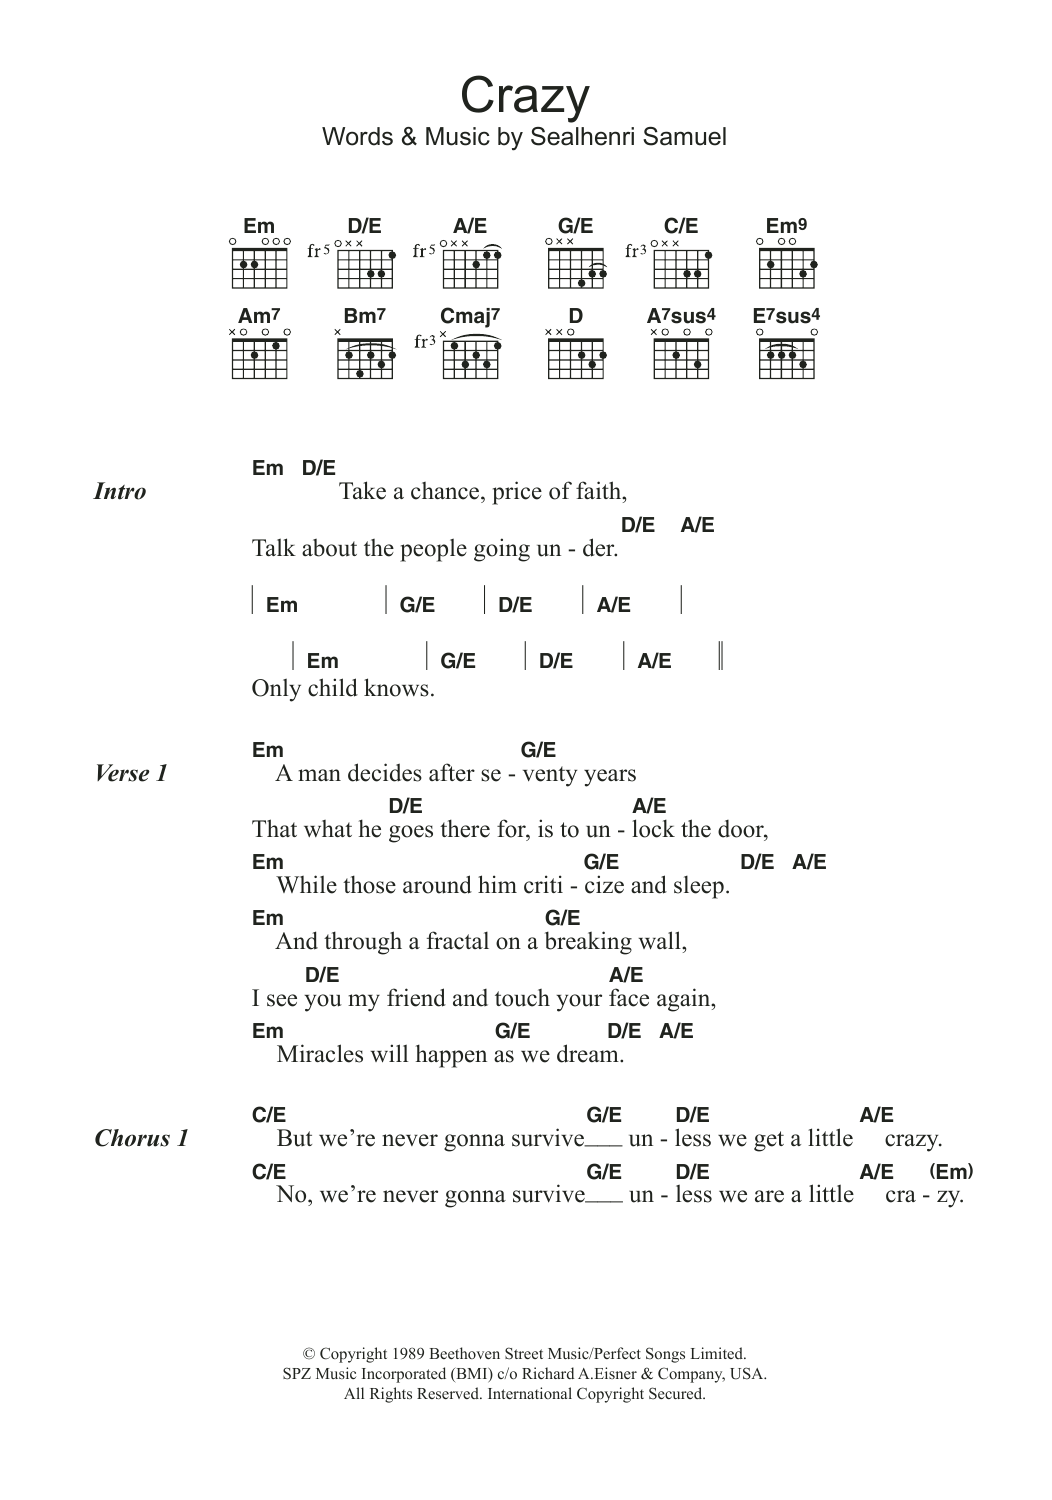 Sheet music digital files to print licensed guitar chordslyrics sheet music digital by merriam music hexwebz Gallery